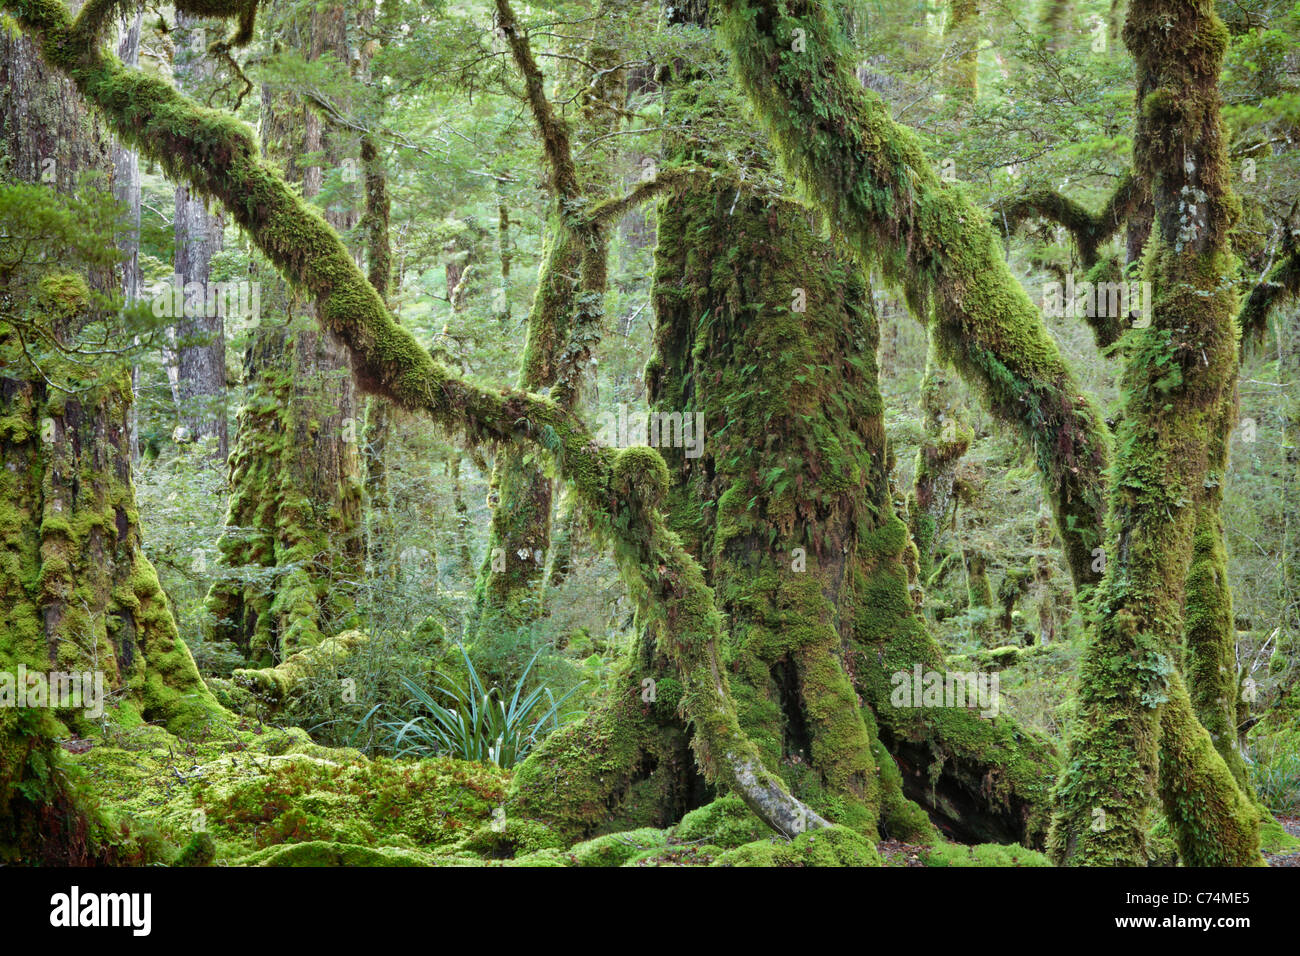 Classic moss-covered Beech forest along the shores of Lake Gunn on the Milford Sound Road in Fjordland, New Zealand - Stock Image